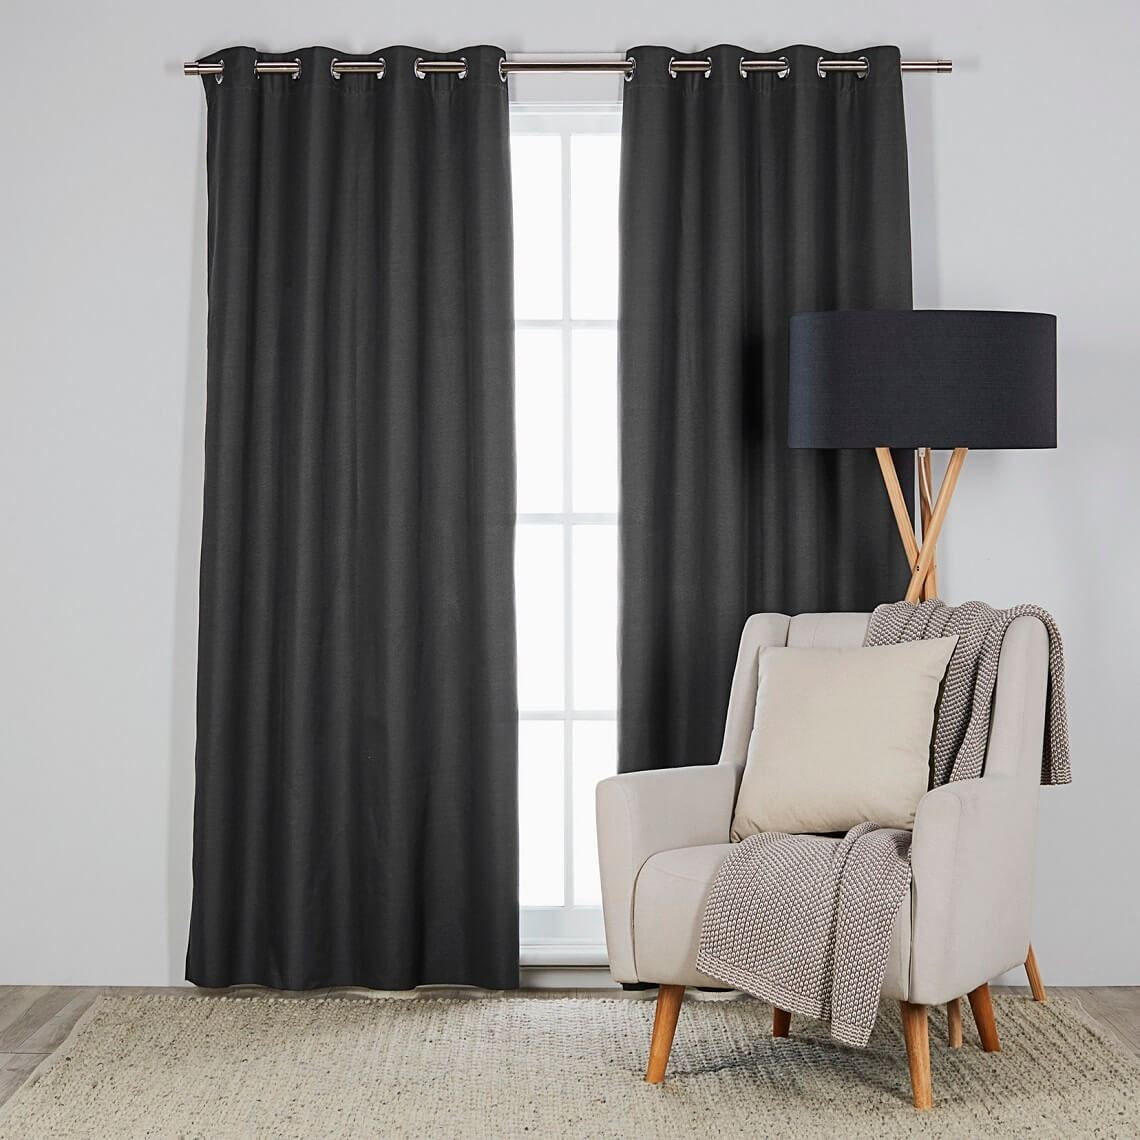 Berle Blockout Eyelet Curtain Size W 300cm x D 0cm x H 260cm in Charcoal Polyester/Acrylic Flock Coating/Stainless Steel Eyelets Freedom by Freedom, a Curtains for sale on Style Sourcebook